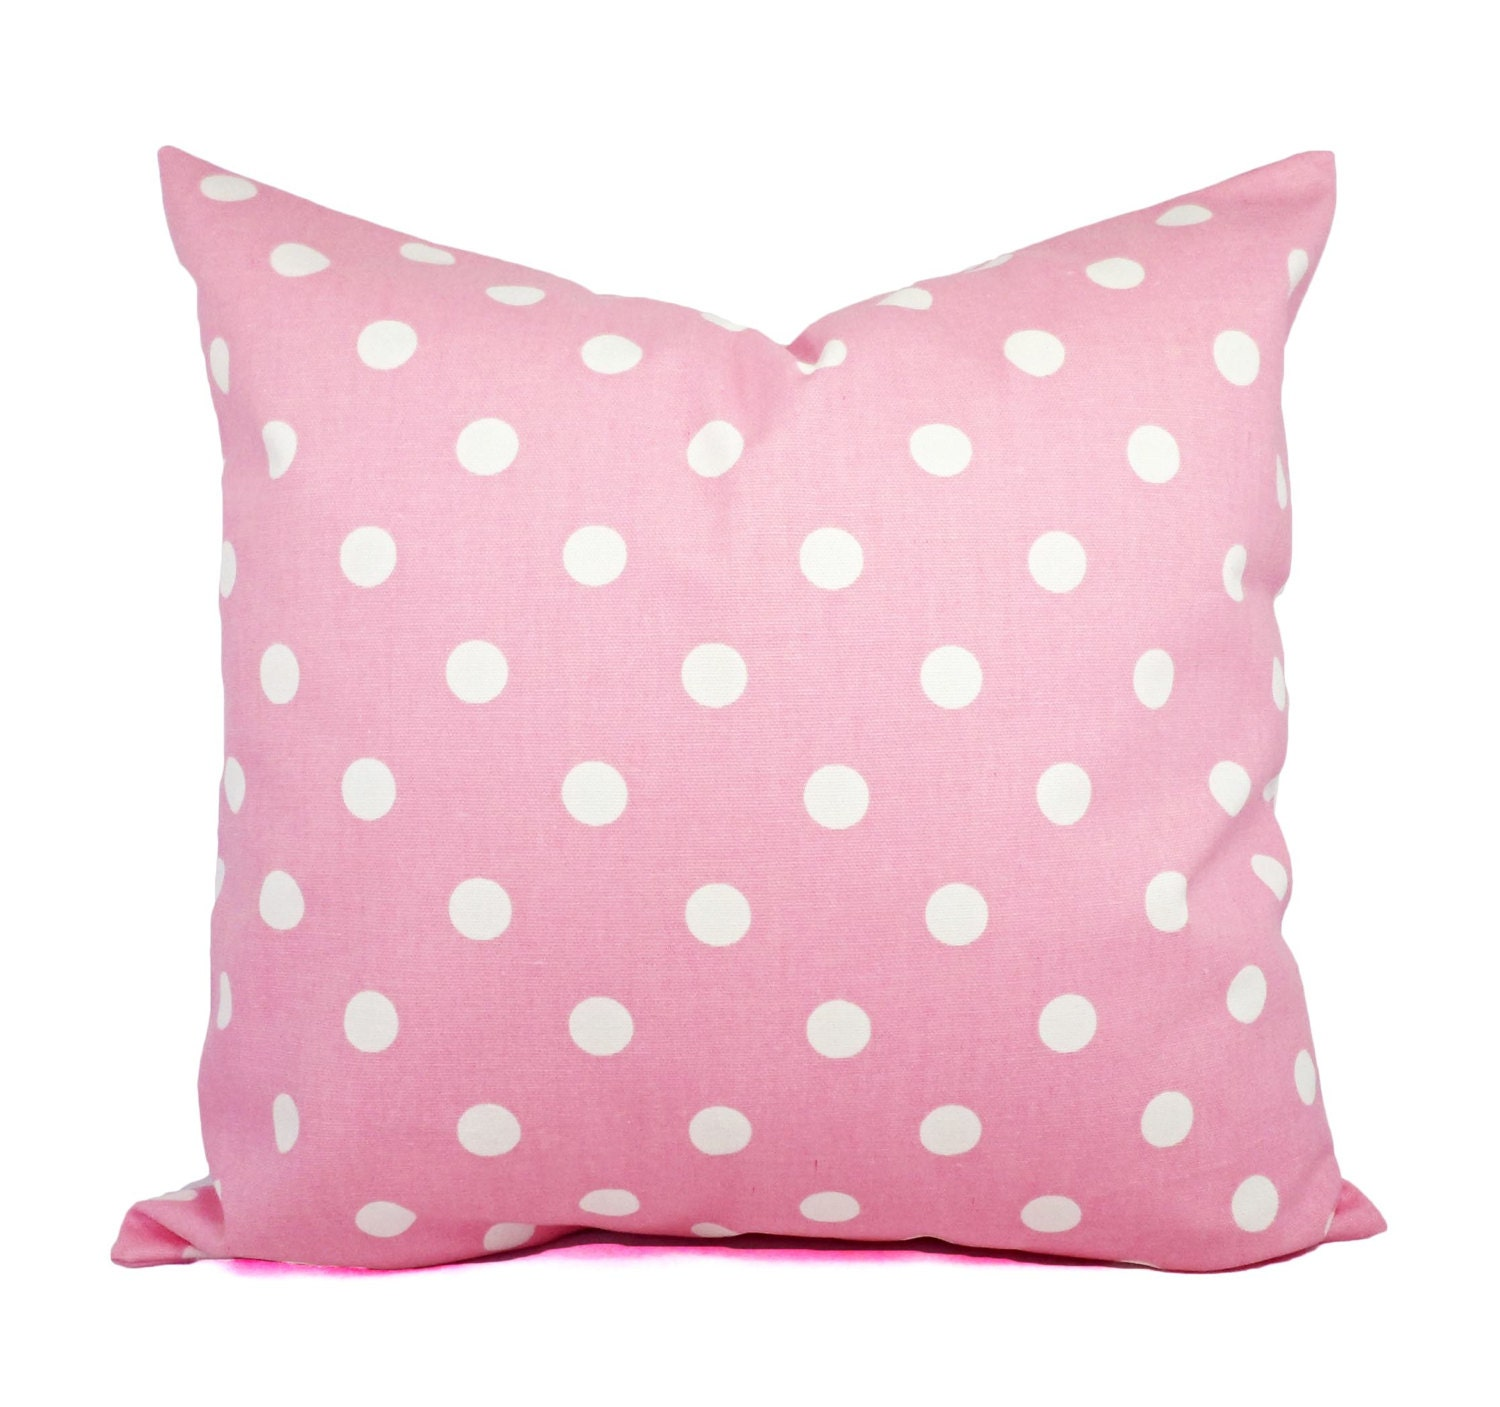 Two Pink Pillow Covers Pale Pink and White Polka Dot Throw